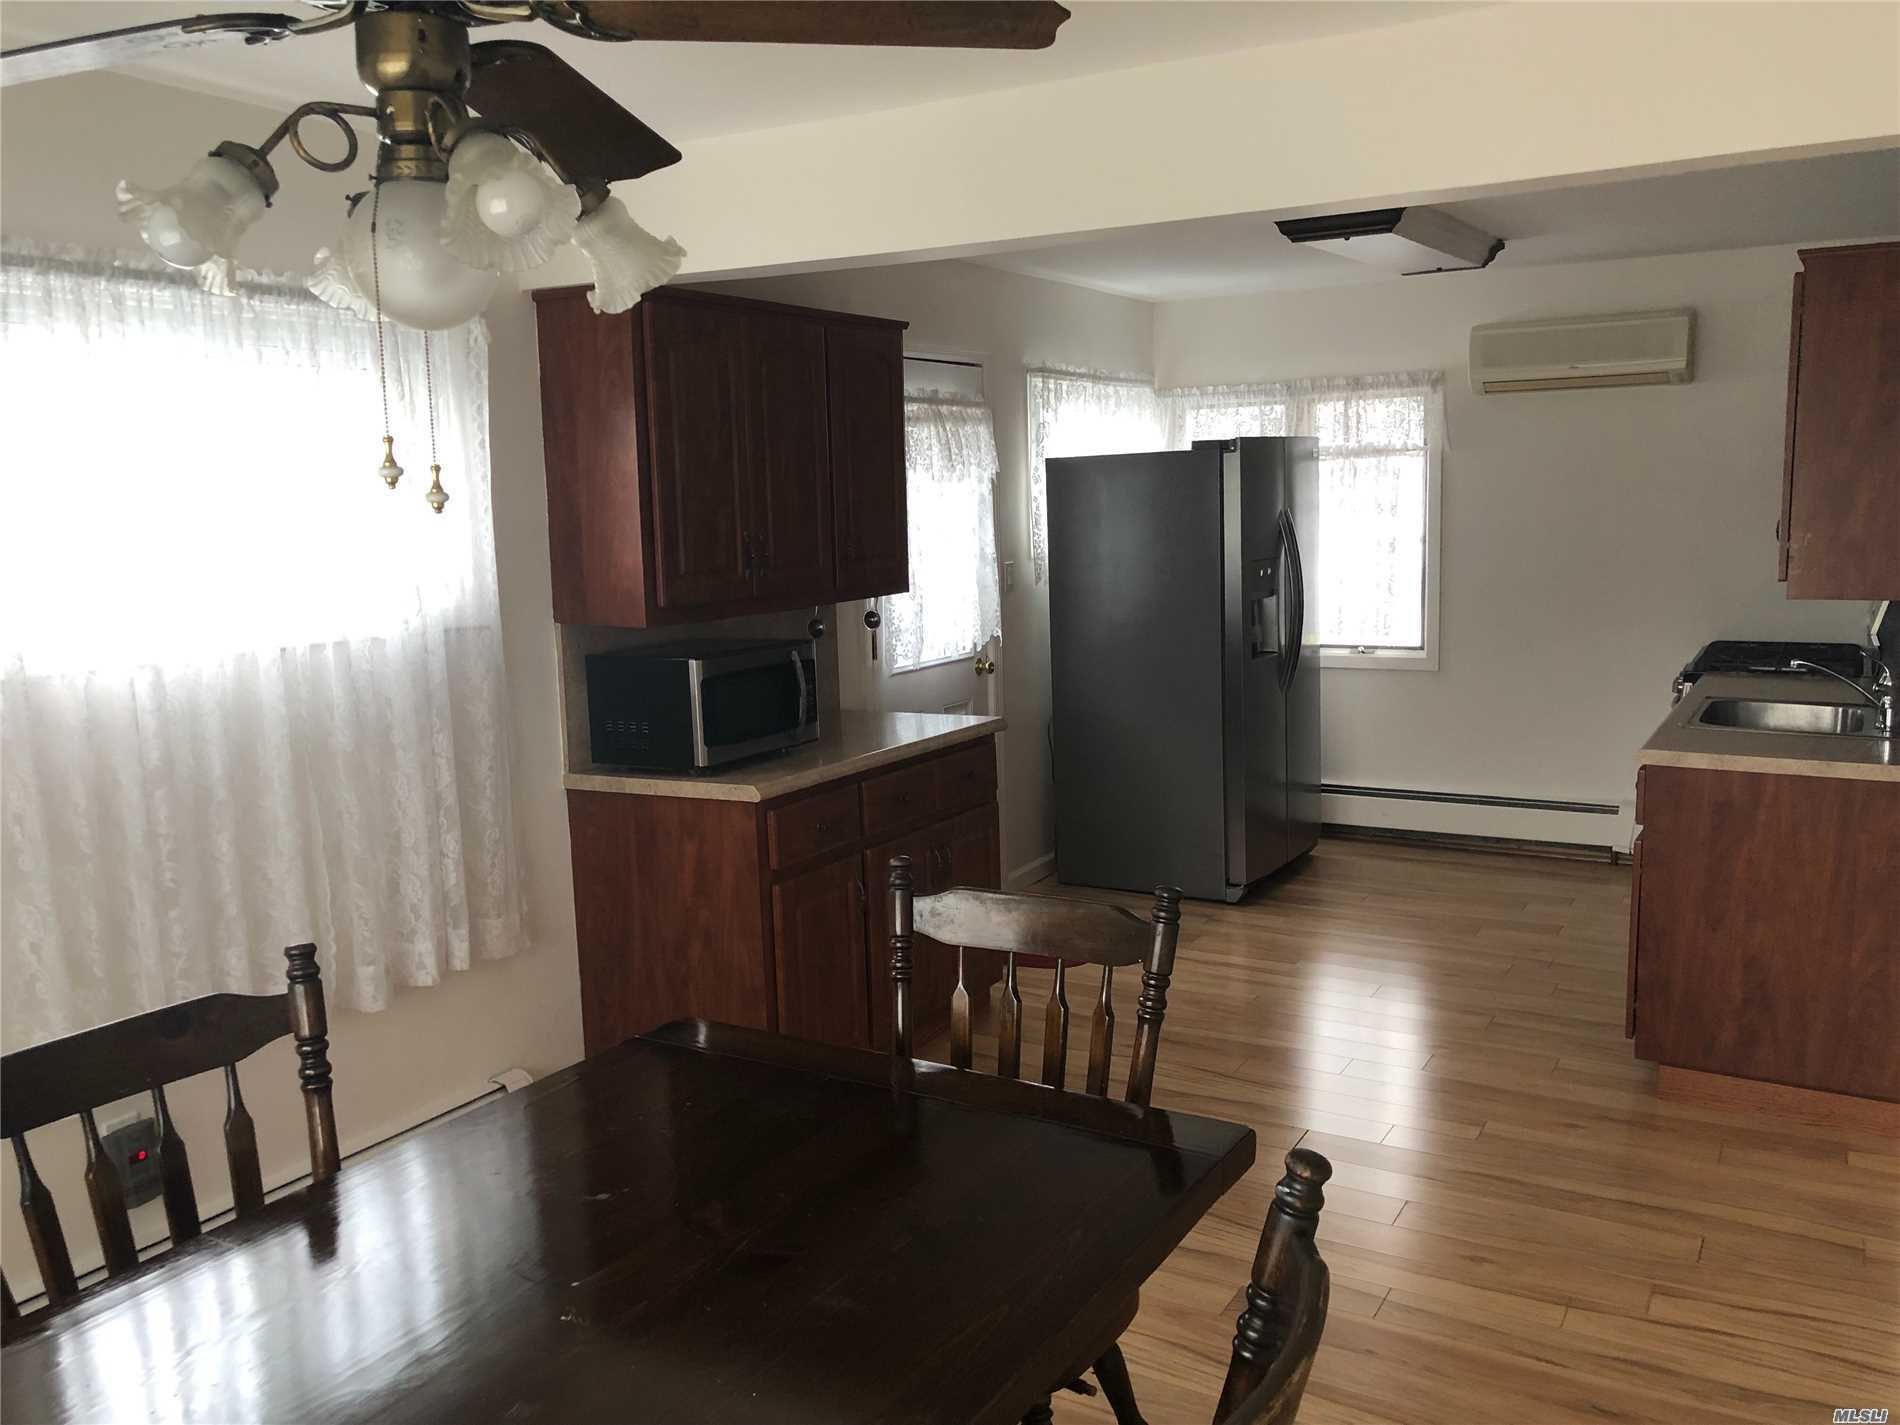 Neat &Clean Fully Renovated Midblock Location With Good Size Rooms, Huge Basement, With 2 New Baths And Decent Backyard With Ample Parking Space On Street And Dry. Close To Sob Rd Shopping Center, Hwy And 5 Mins Drive To Lirr. Pics Coming Soon